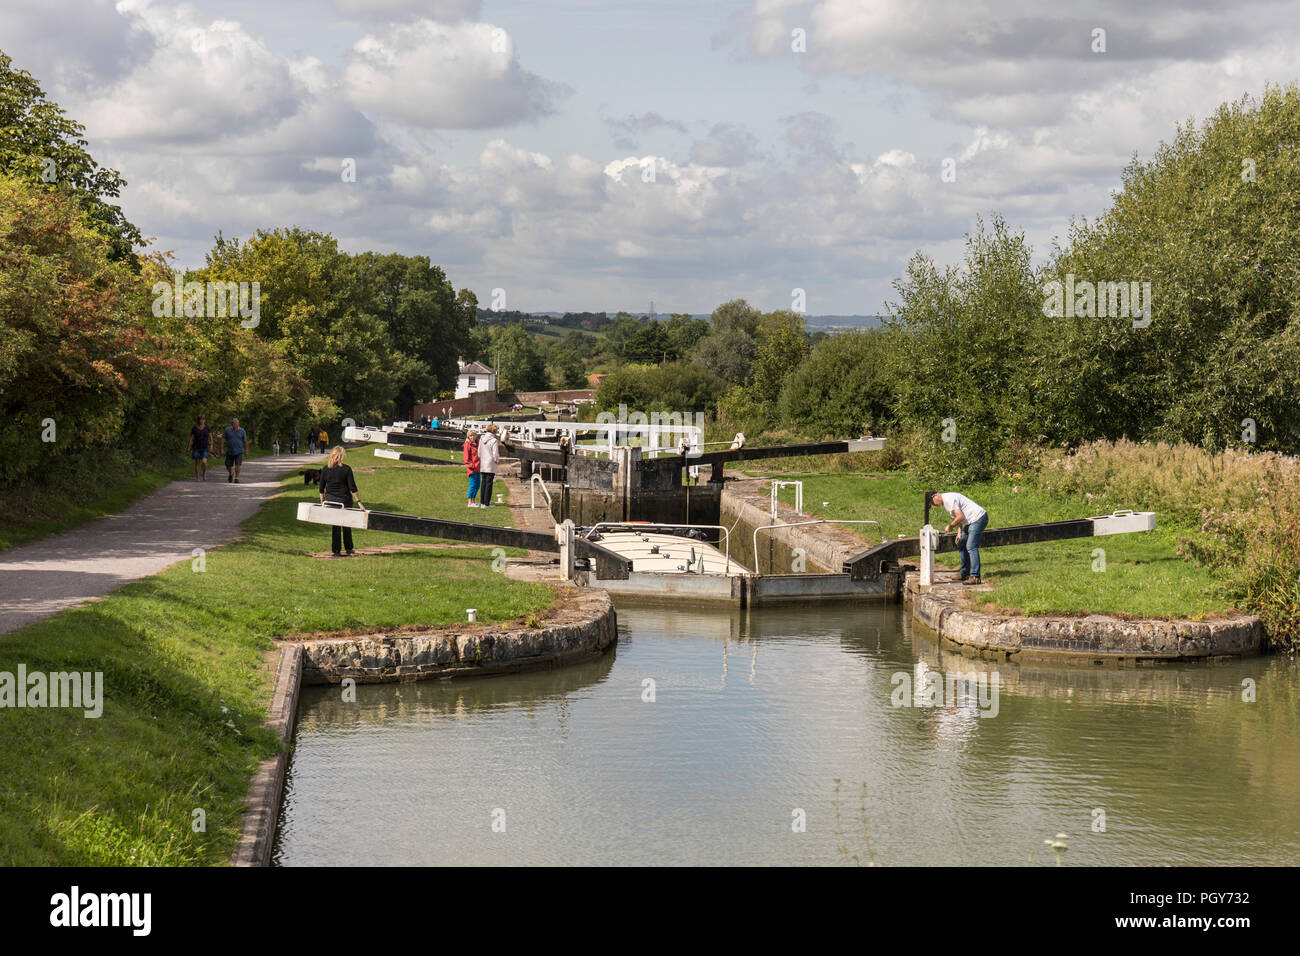 Canal boat at the lock gates on the Kennet and Avon canal, Caen Hill locks, Devizes, Wiltshire - Stock Image